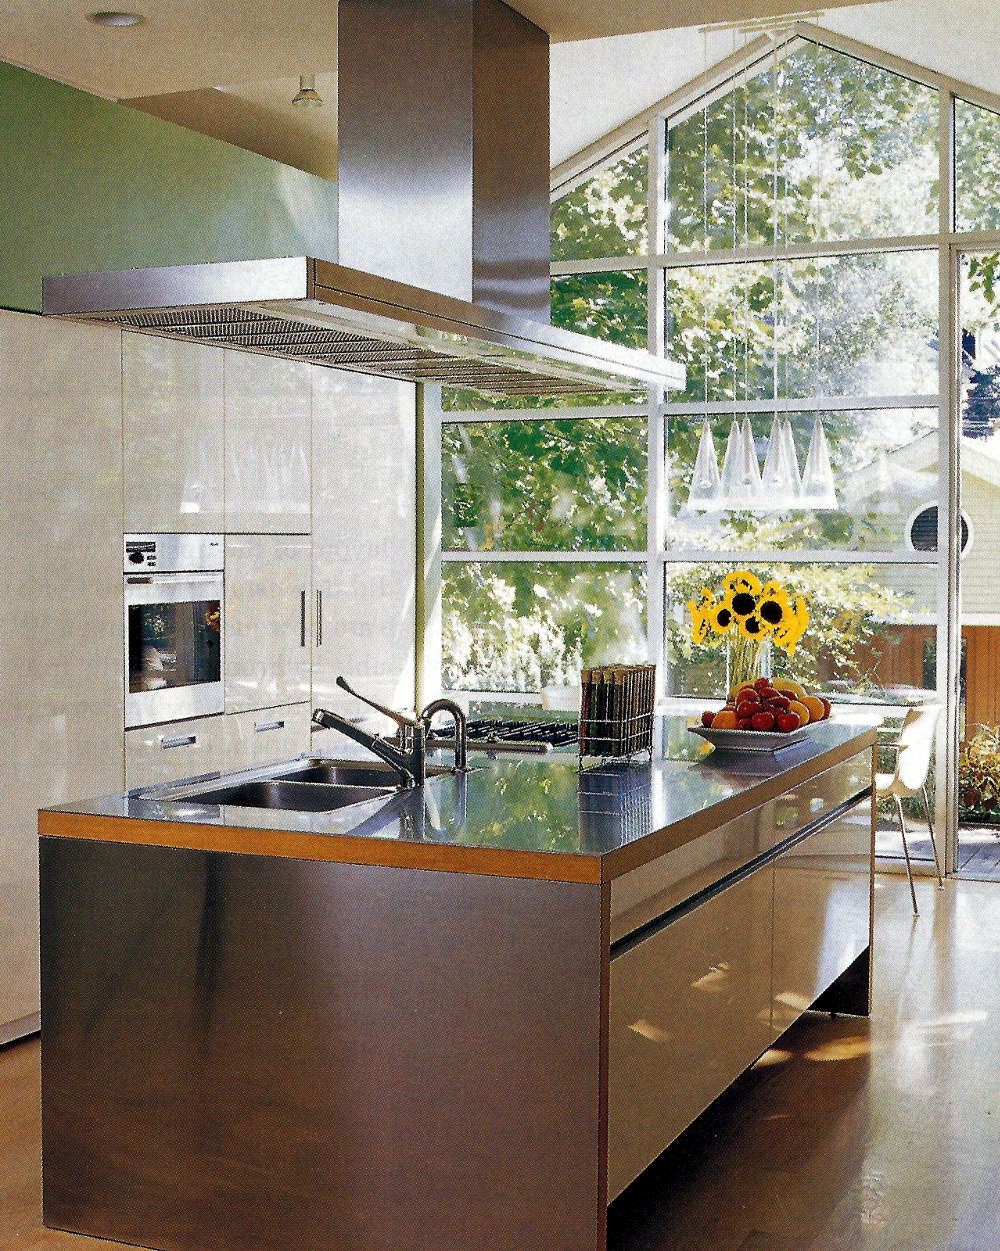 Glass Wall Kitchen   Chicago Townhouse Kitchen With Full Glass Wall   Met  Home Via Atticmag